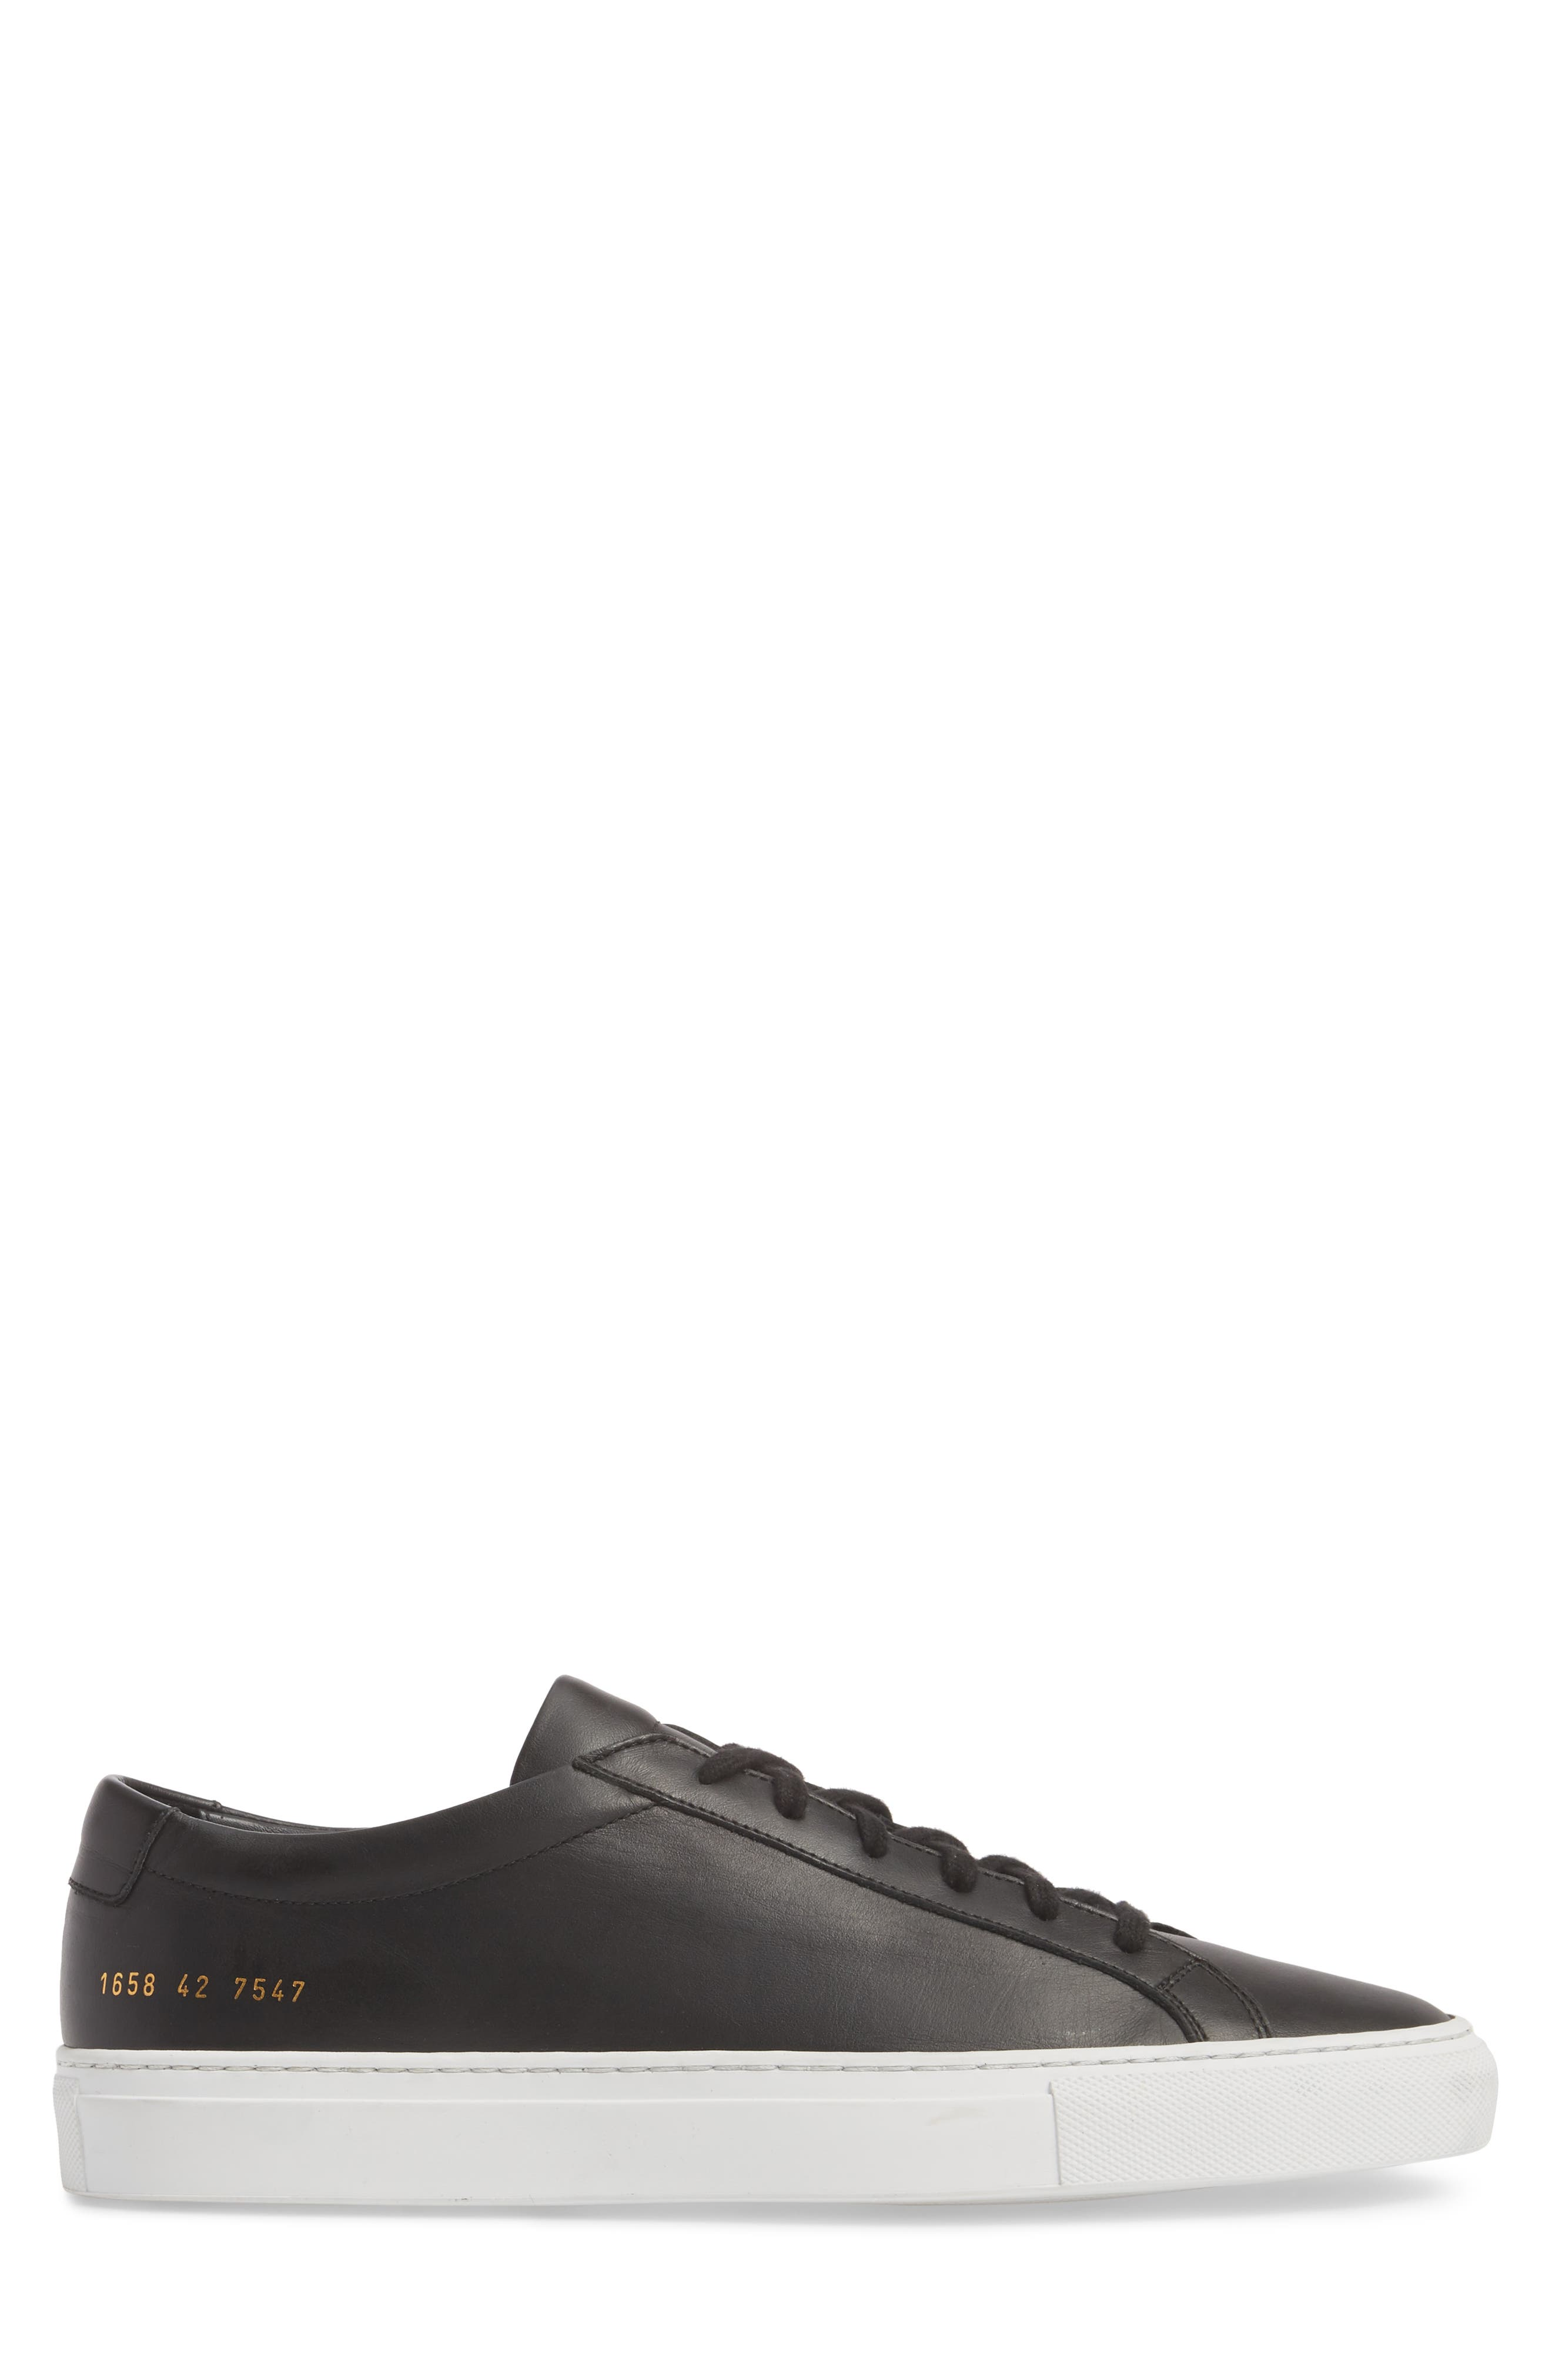 COMMON PROJECTS, Achilles Low Sneaker, Alternate thumbnail 3, color, BLACK LEATHER